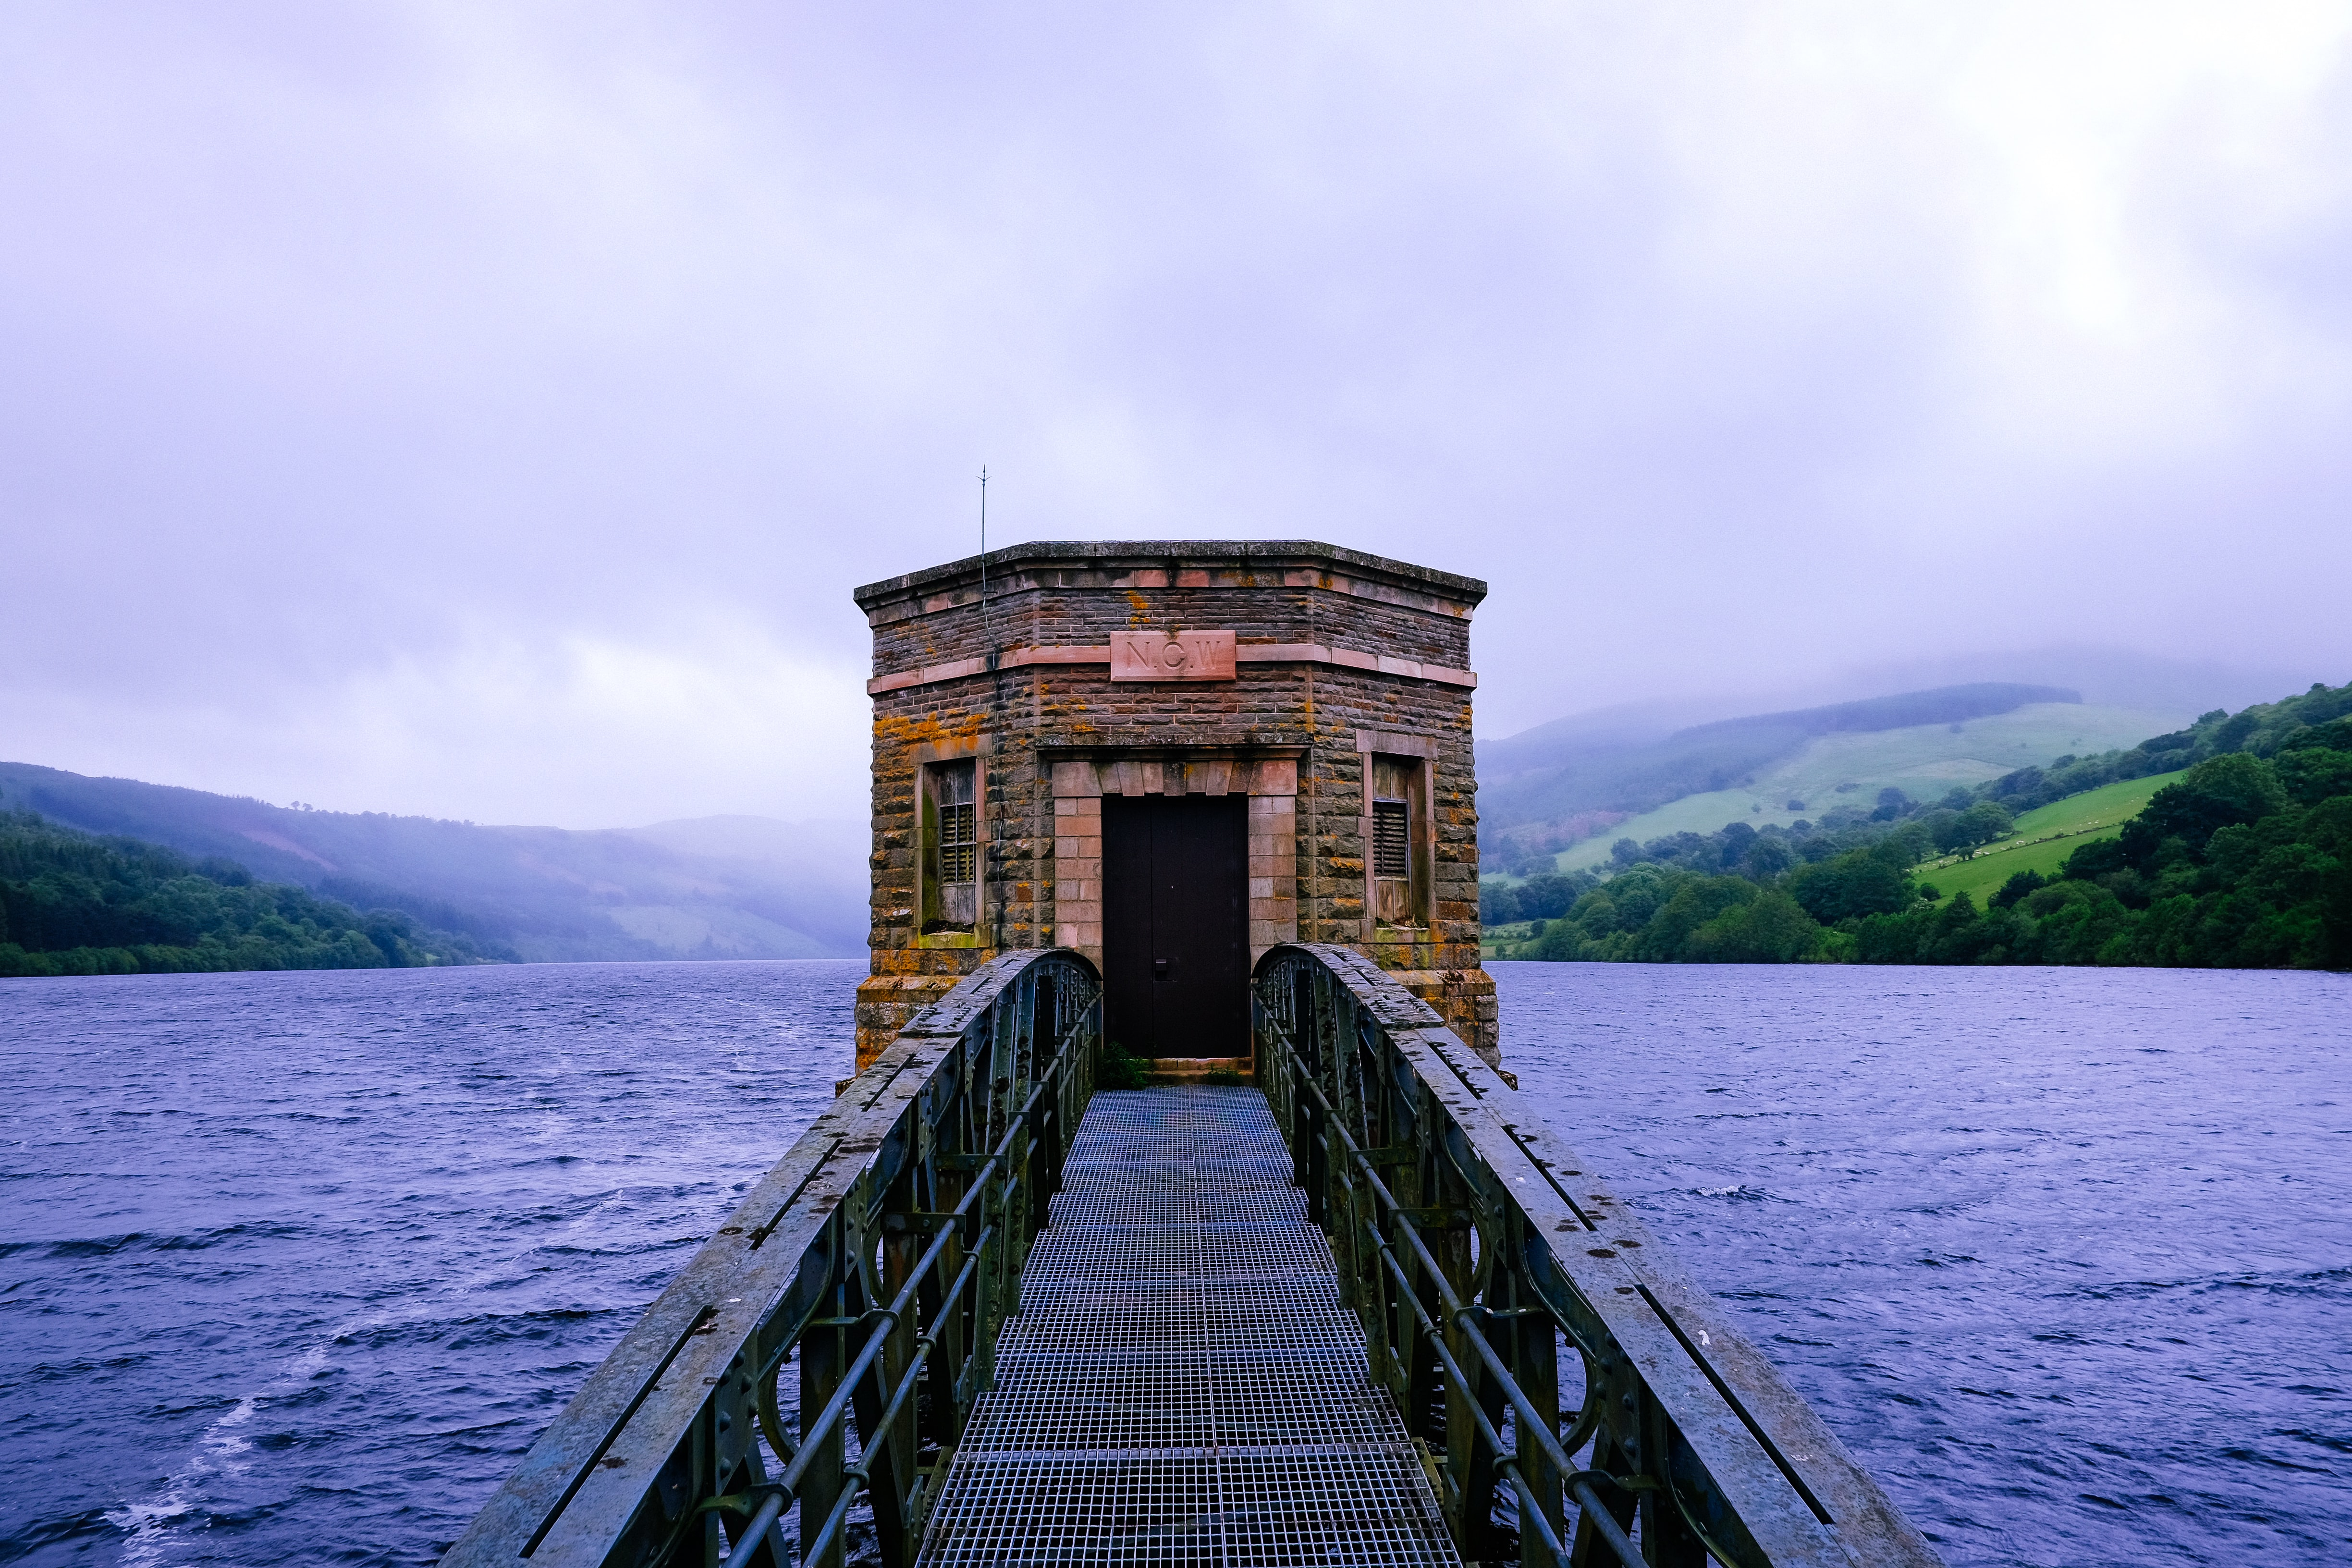 black metal bridge leading to building surrounded by water